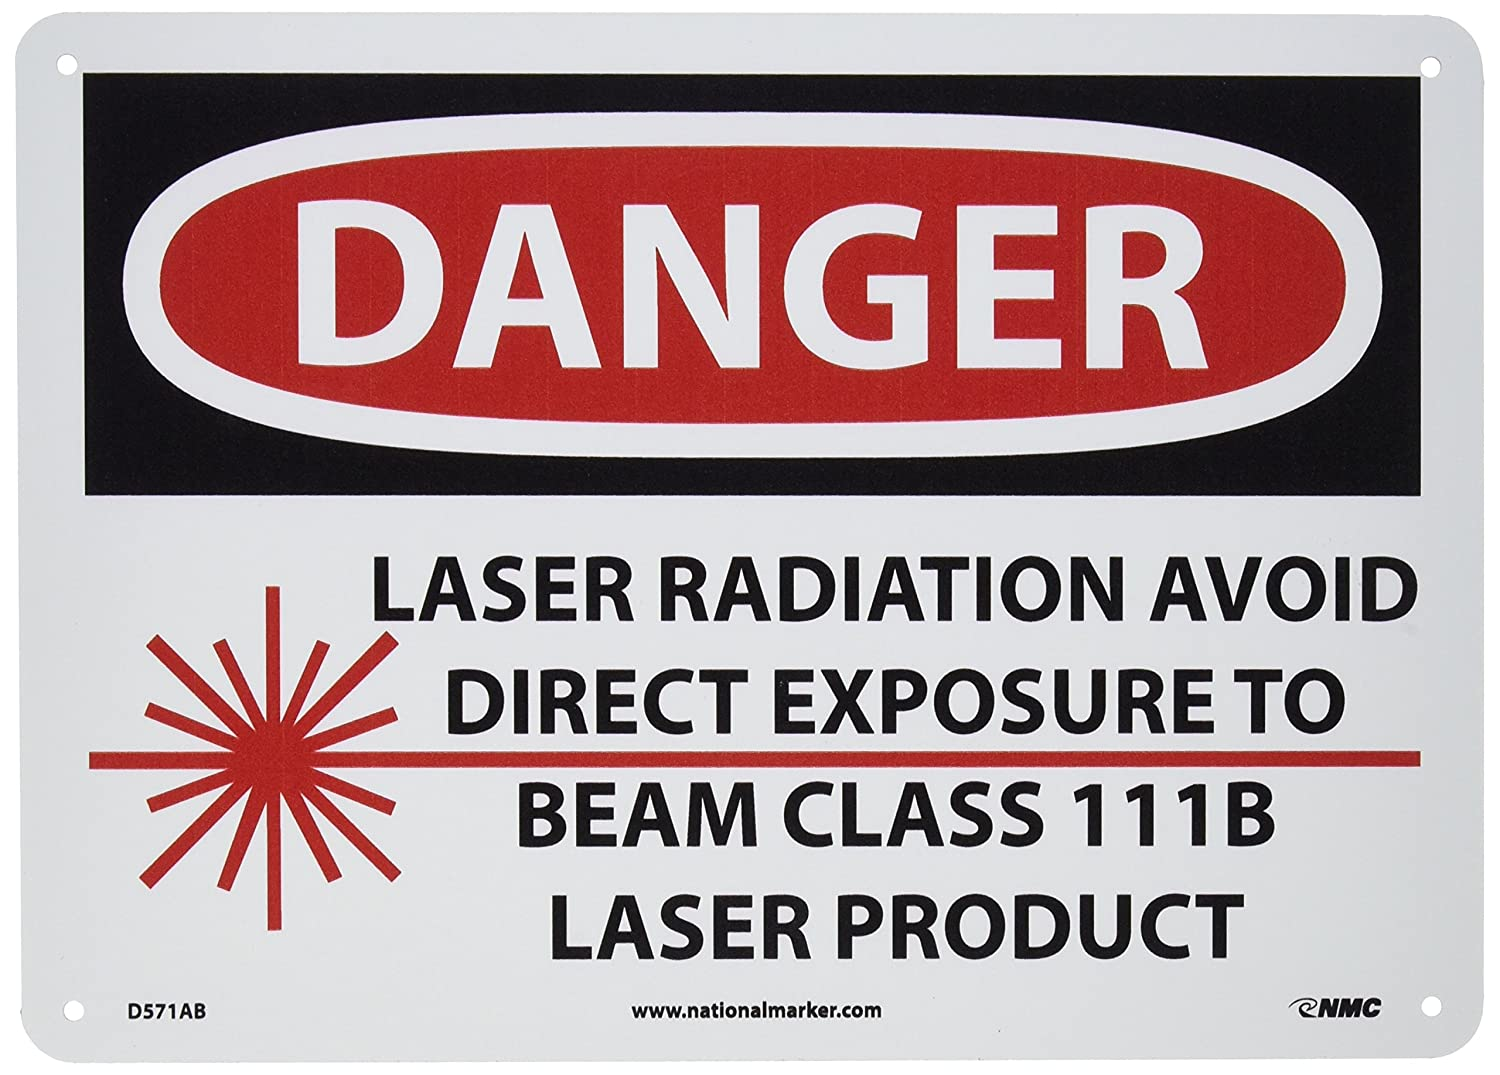 0.040 Aluminum Black//Red on White 14 Length x 10 Height NMC D571AB OSHA Sign LASER RADIATION AVOID DIRECT EXPOSURE TO BEAM CLASS 111B LASER PRODUCT with Graphic 14 Length x 10 Height Legend DANGER